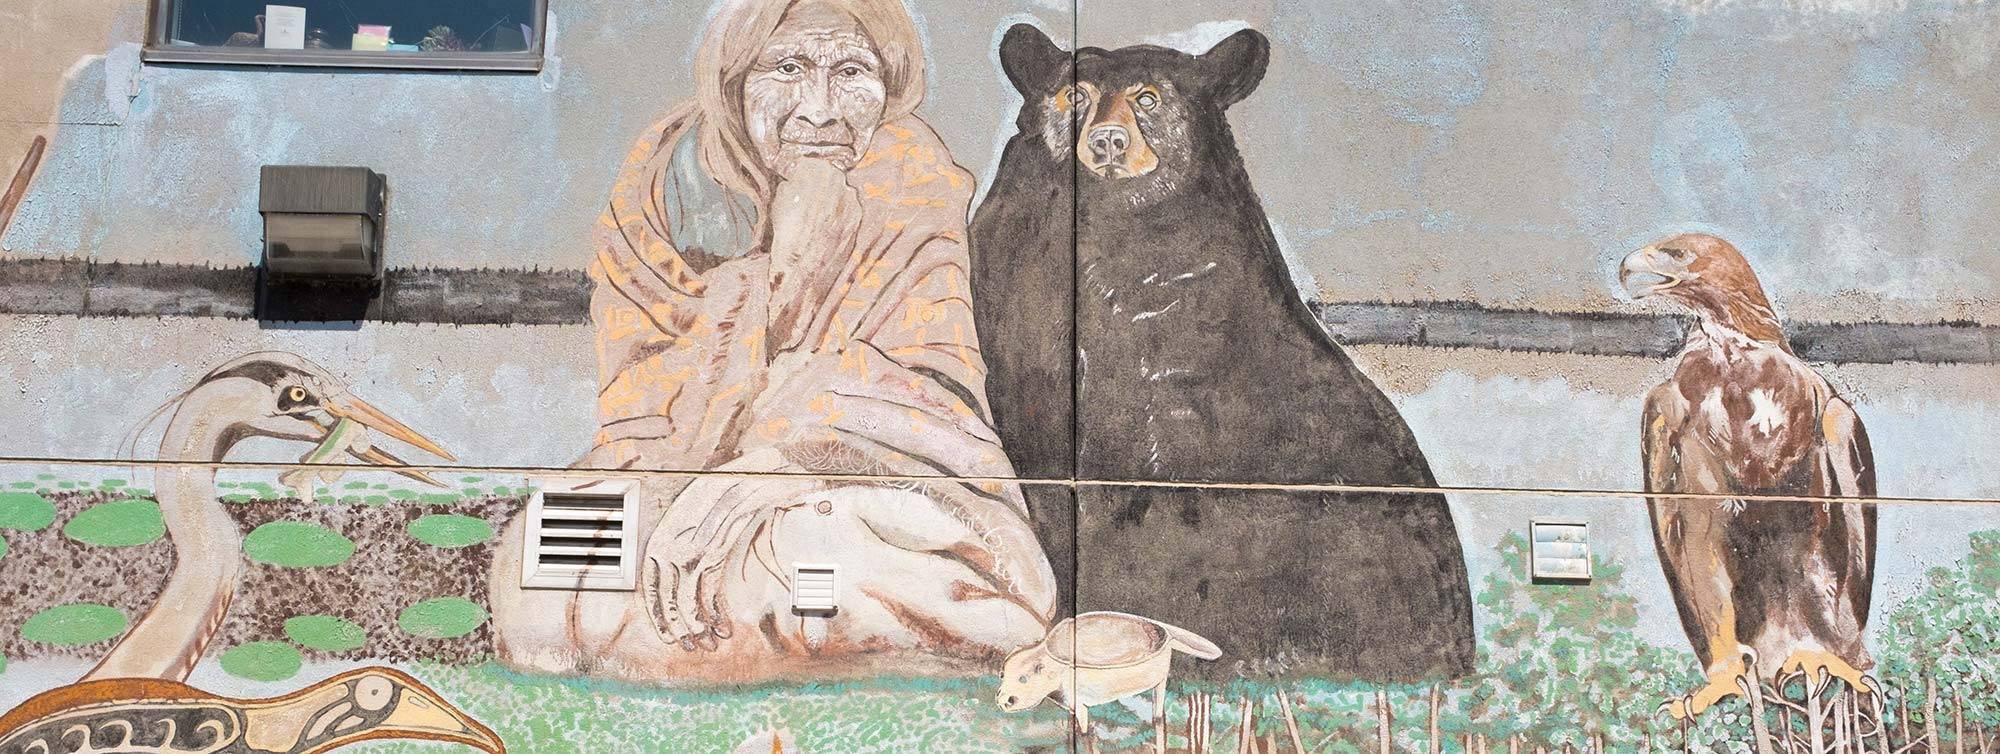 Indigenous art wall mural in Rama, Ontario showing an Elder, black bear, and an eagle